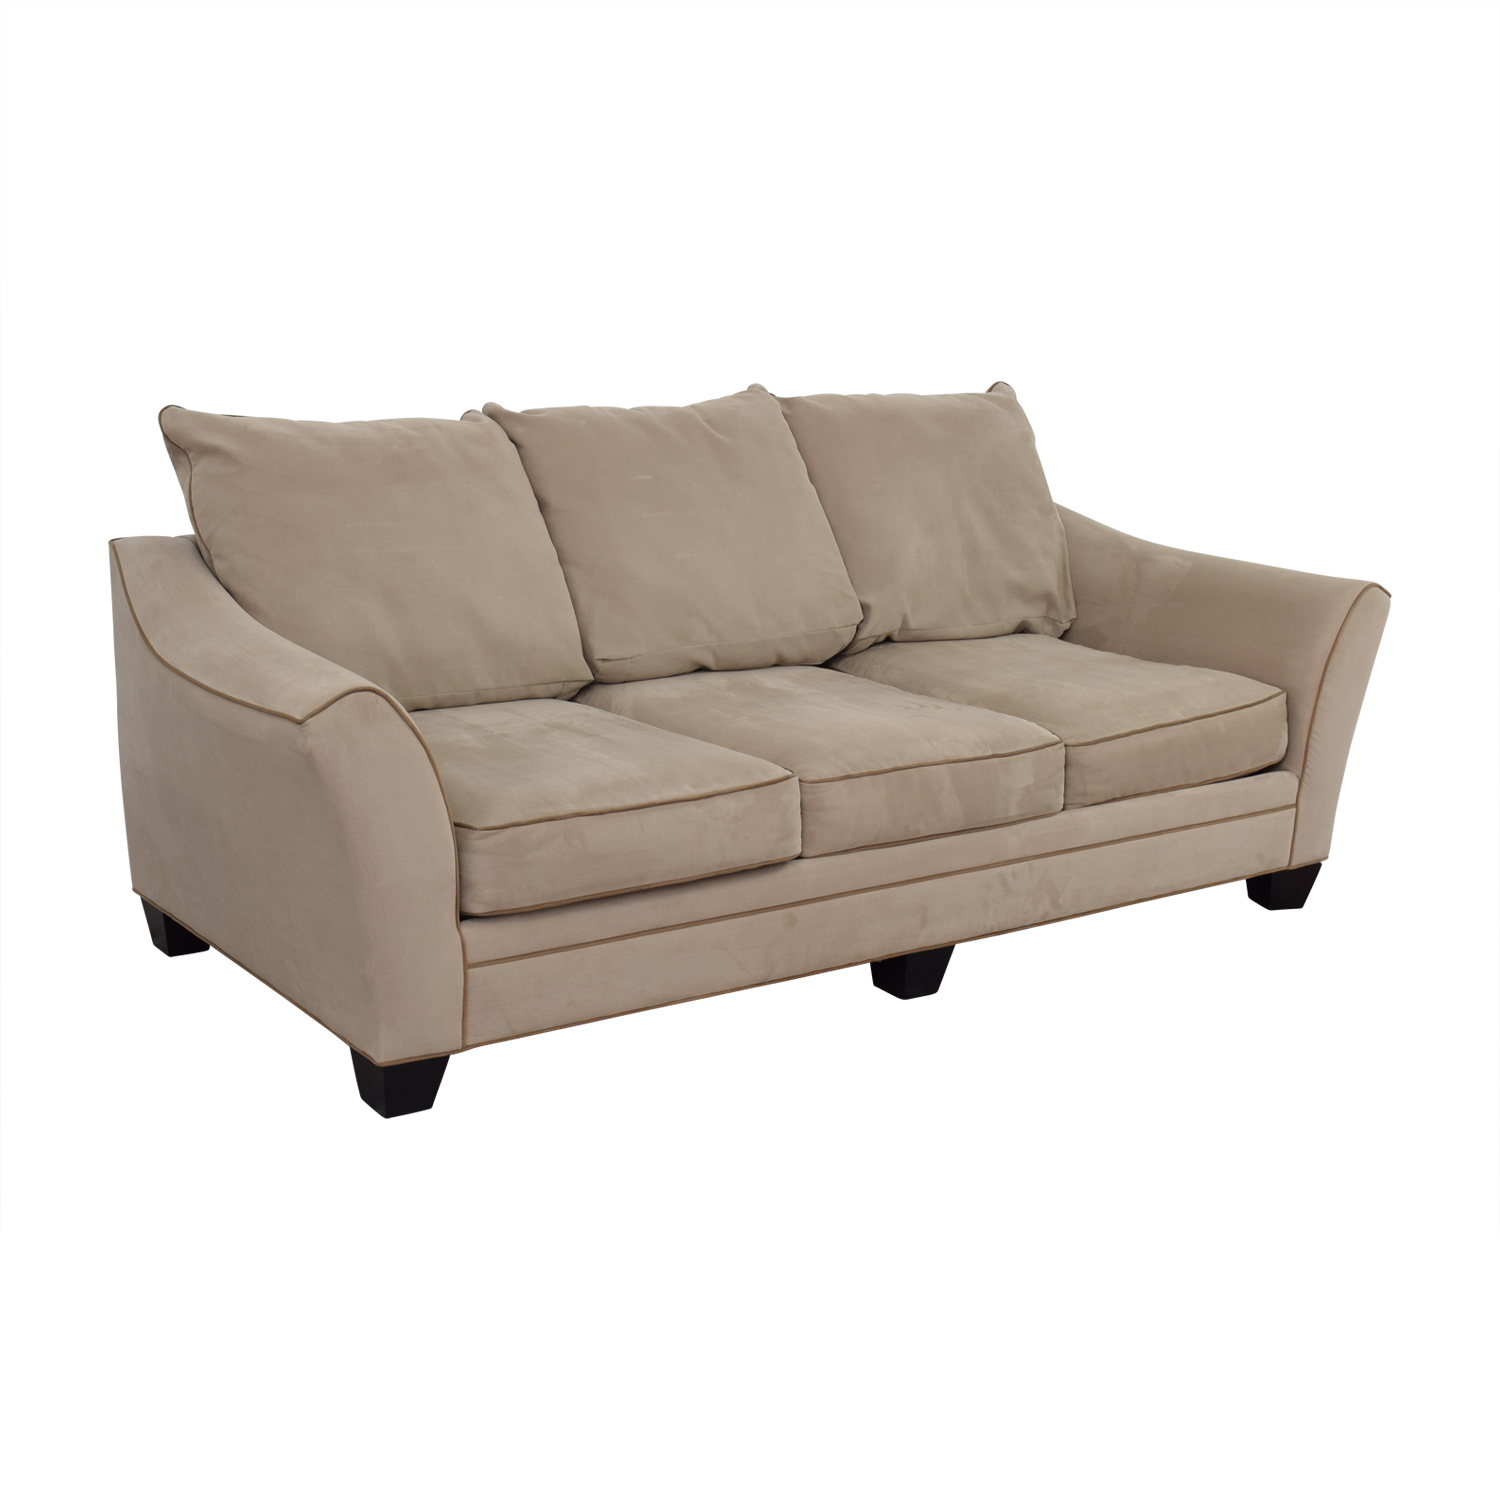 Raymour & Flanigan Raymour & Flanigan Briarwood Gray Microfiber Sofa for sale